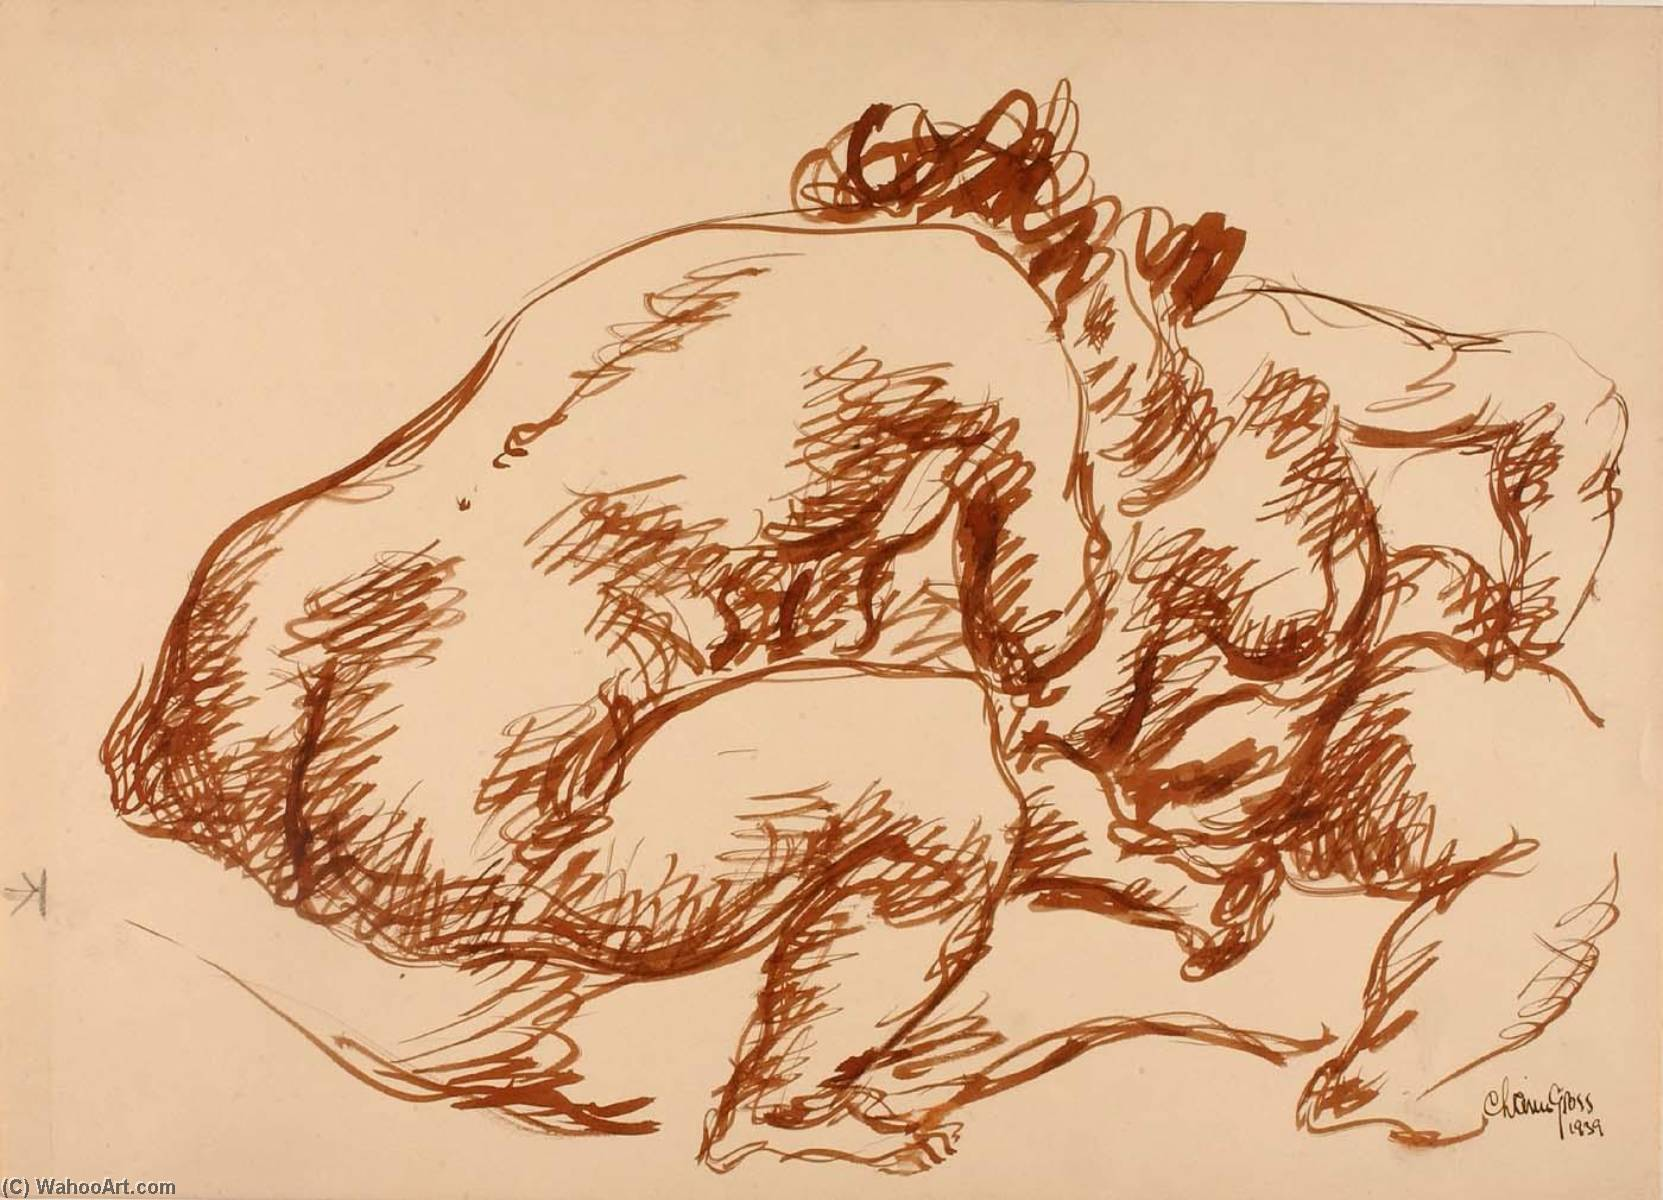 (Two Nudes), Watercolour by Chaim Gross